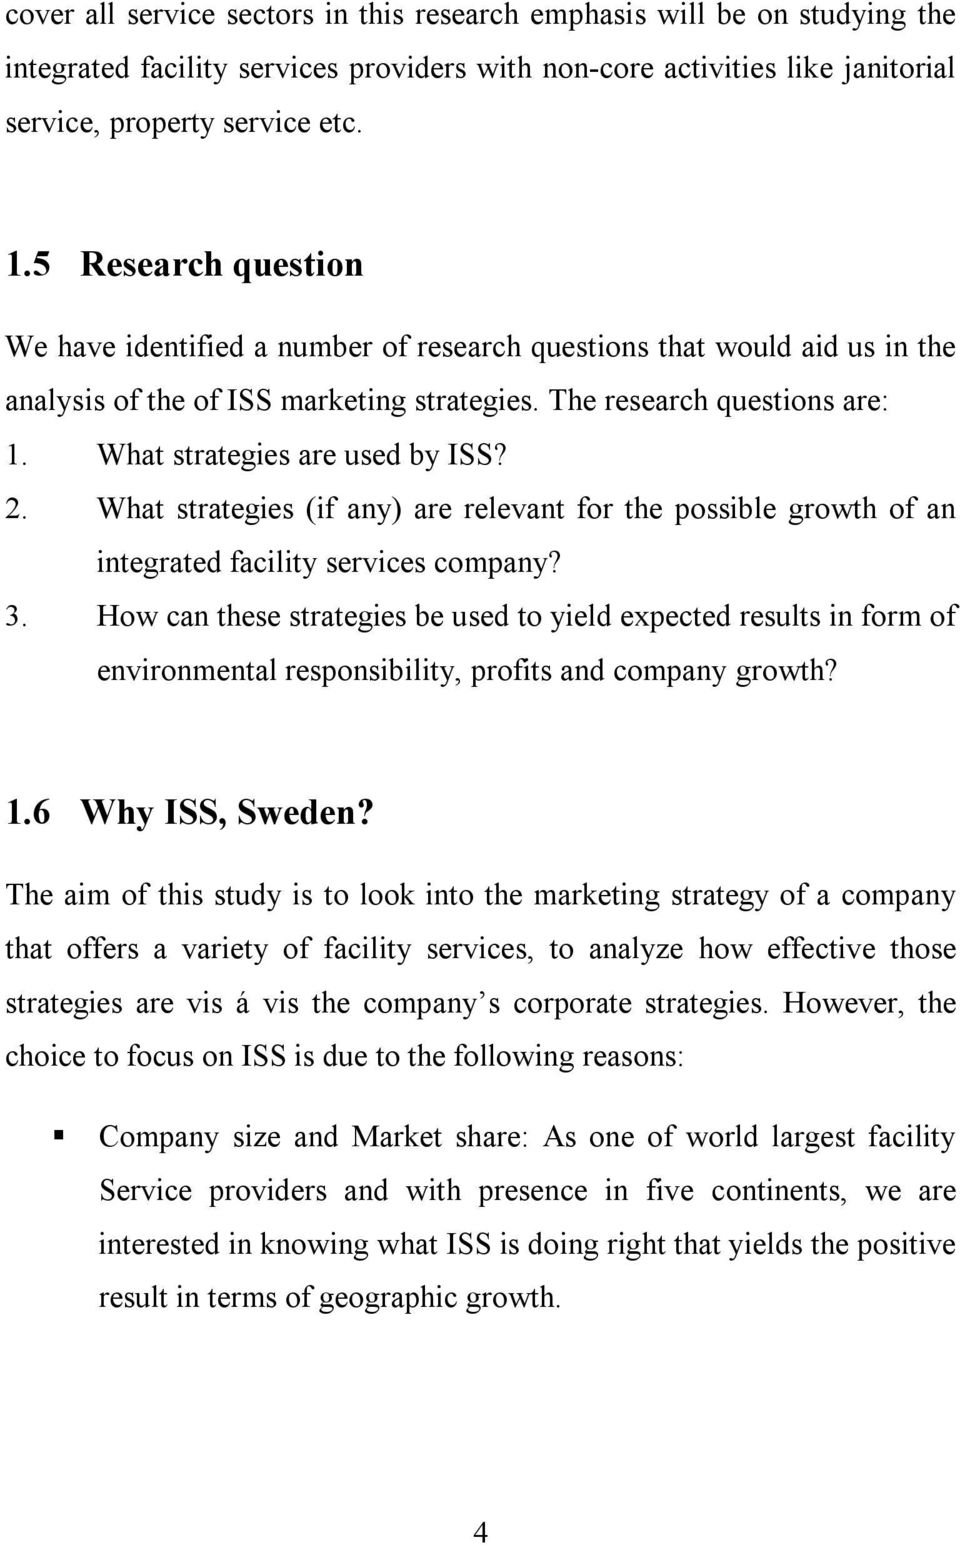 What strategies are used by ISS? 2. What strategies (if any) are relevant for the possible growth of an integrated facility services company? 3.